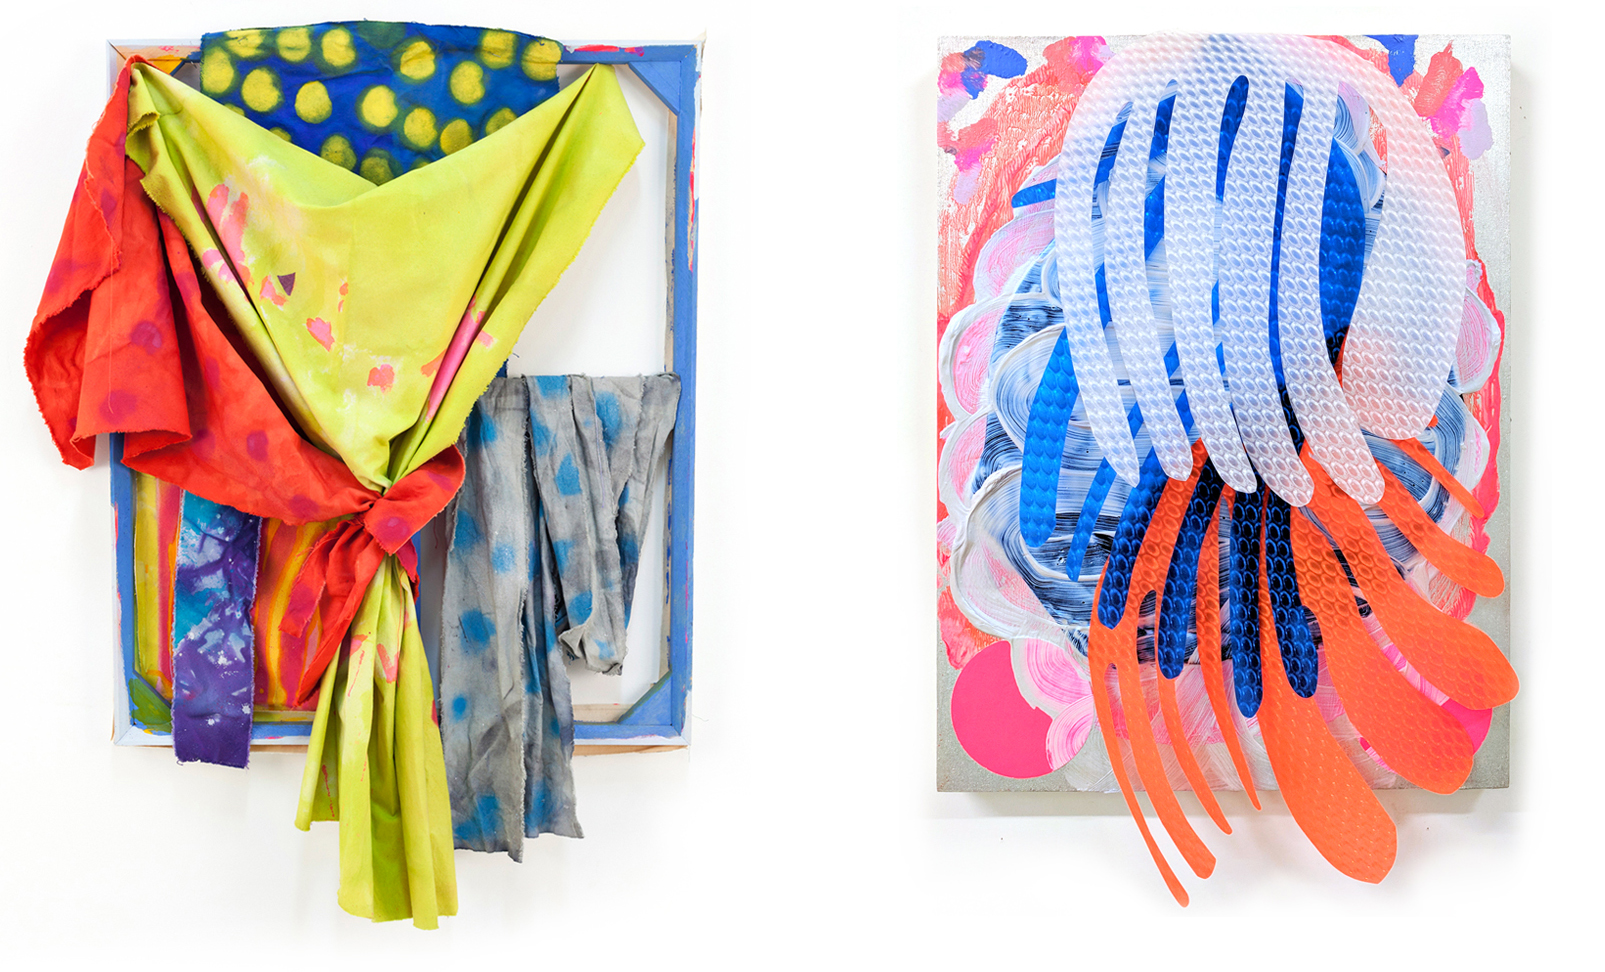 Left: Jamie Powell,  Stand Up Straight Girl , 2015, acrylic and spray paint on dyed cut canvas, 46 x 34 inches, courtesy of the artist. Right: Melissa Staiger,  Brain Power II,  2017, assemblage made of acrylic paint, paper and plastic, 16 x 12 x 3 inches, courtesy of the artist.